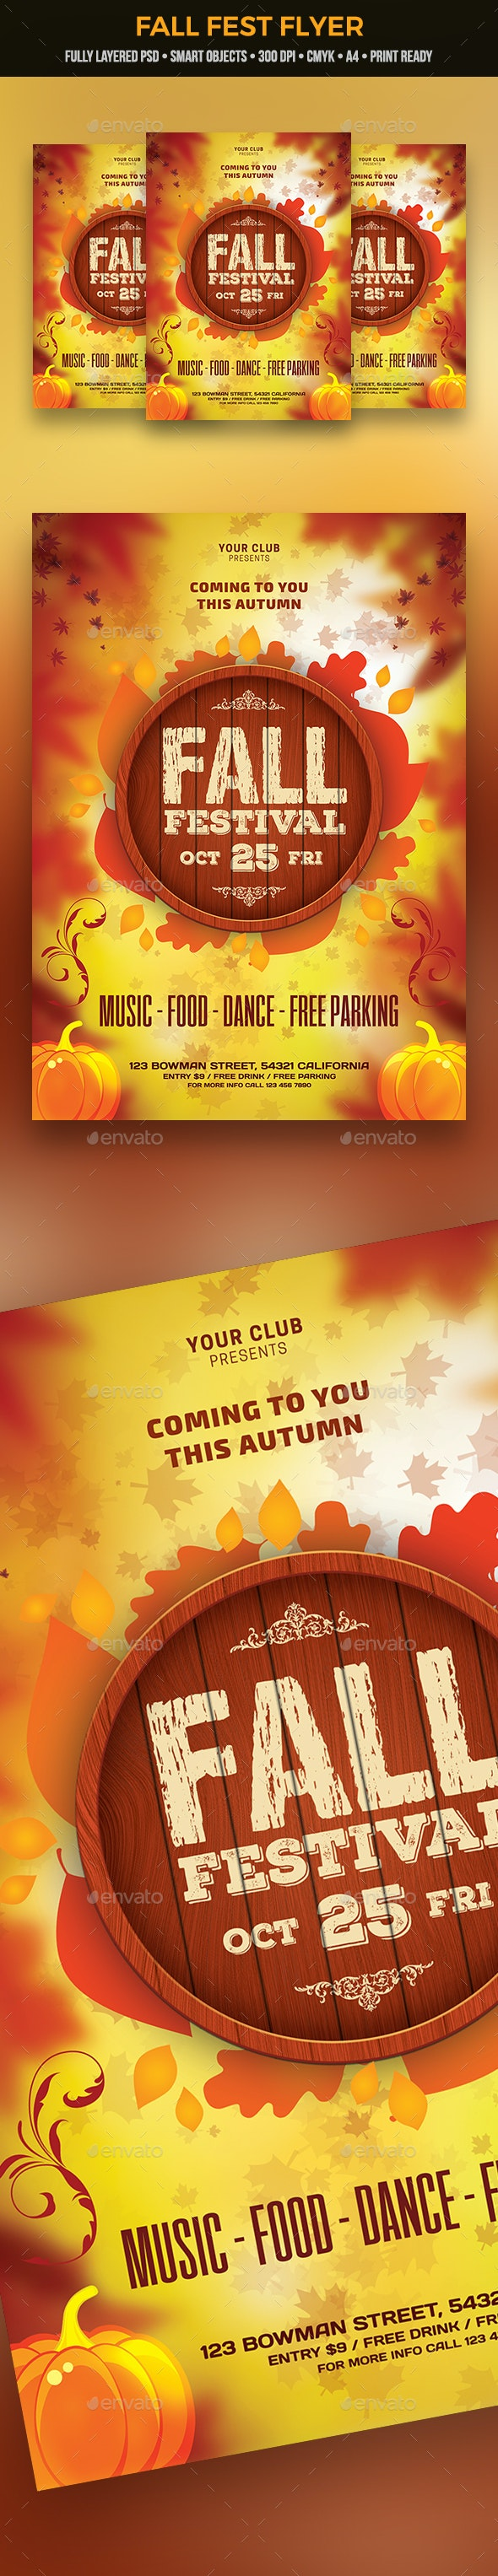 Fall Fest Flyer - Clubs & Parties Events